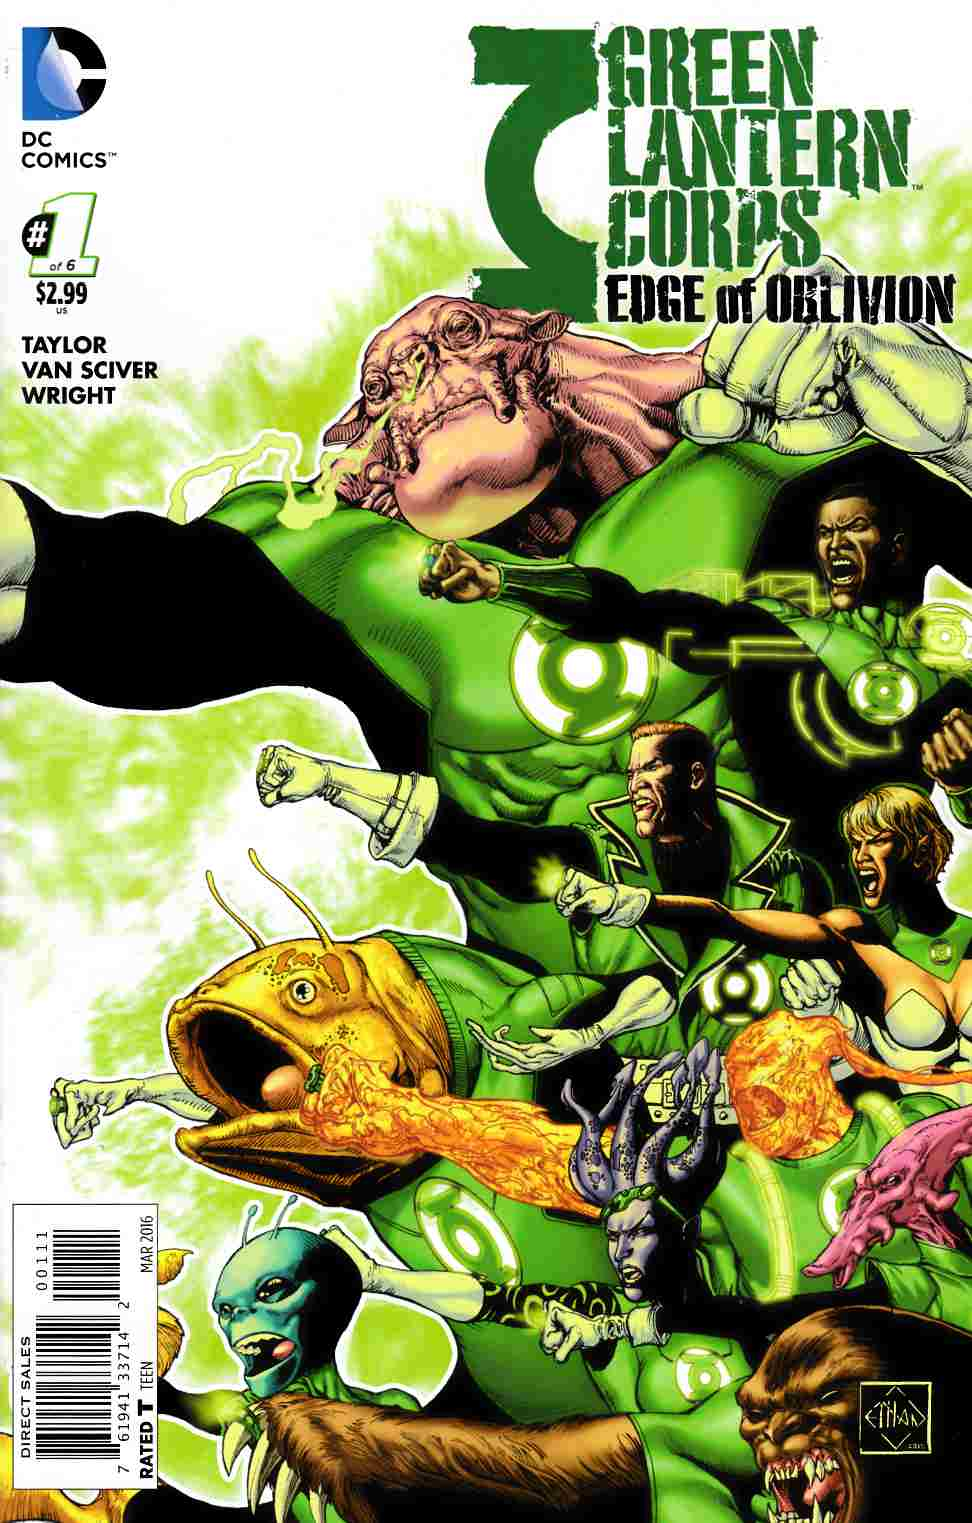 Green Lantern Corps Edge of Oblivion #1 [DC Comic] LARGE